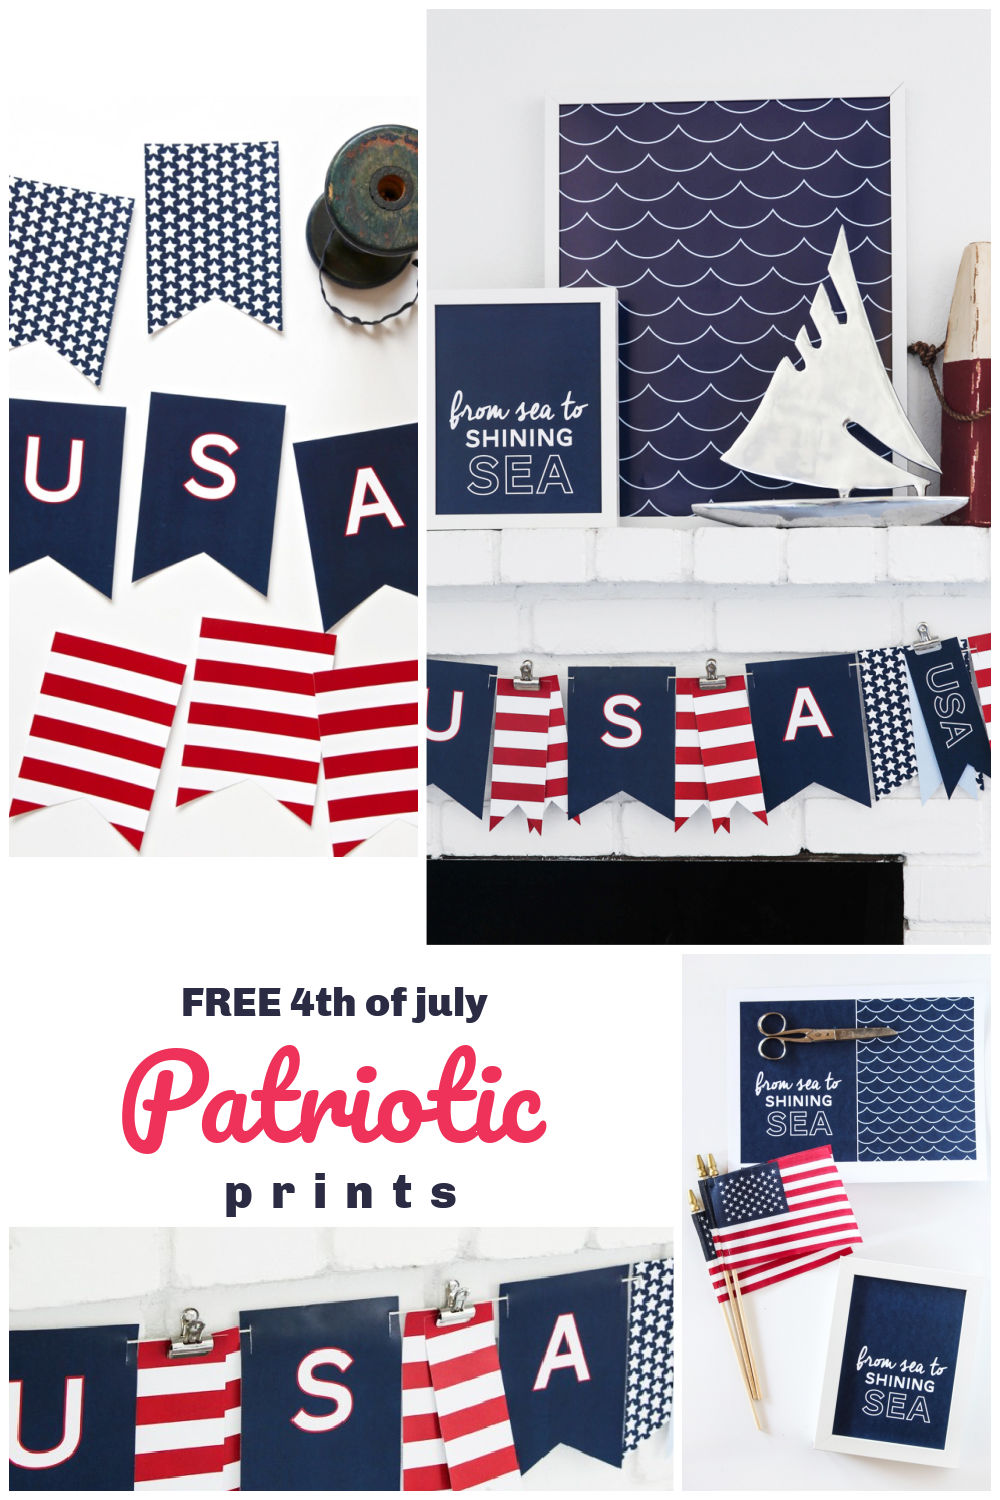 Free Patriotic 4th of July Nautical Prints. Need a last-minute idea? Print out these adorable patriotic banner for instant 4th of July decor!